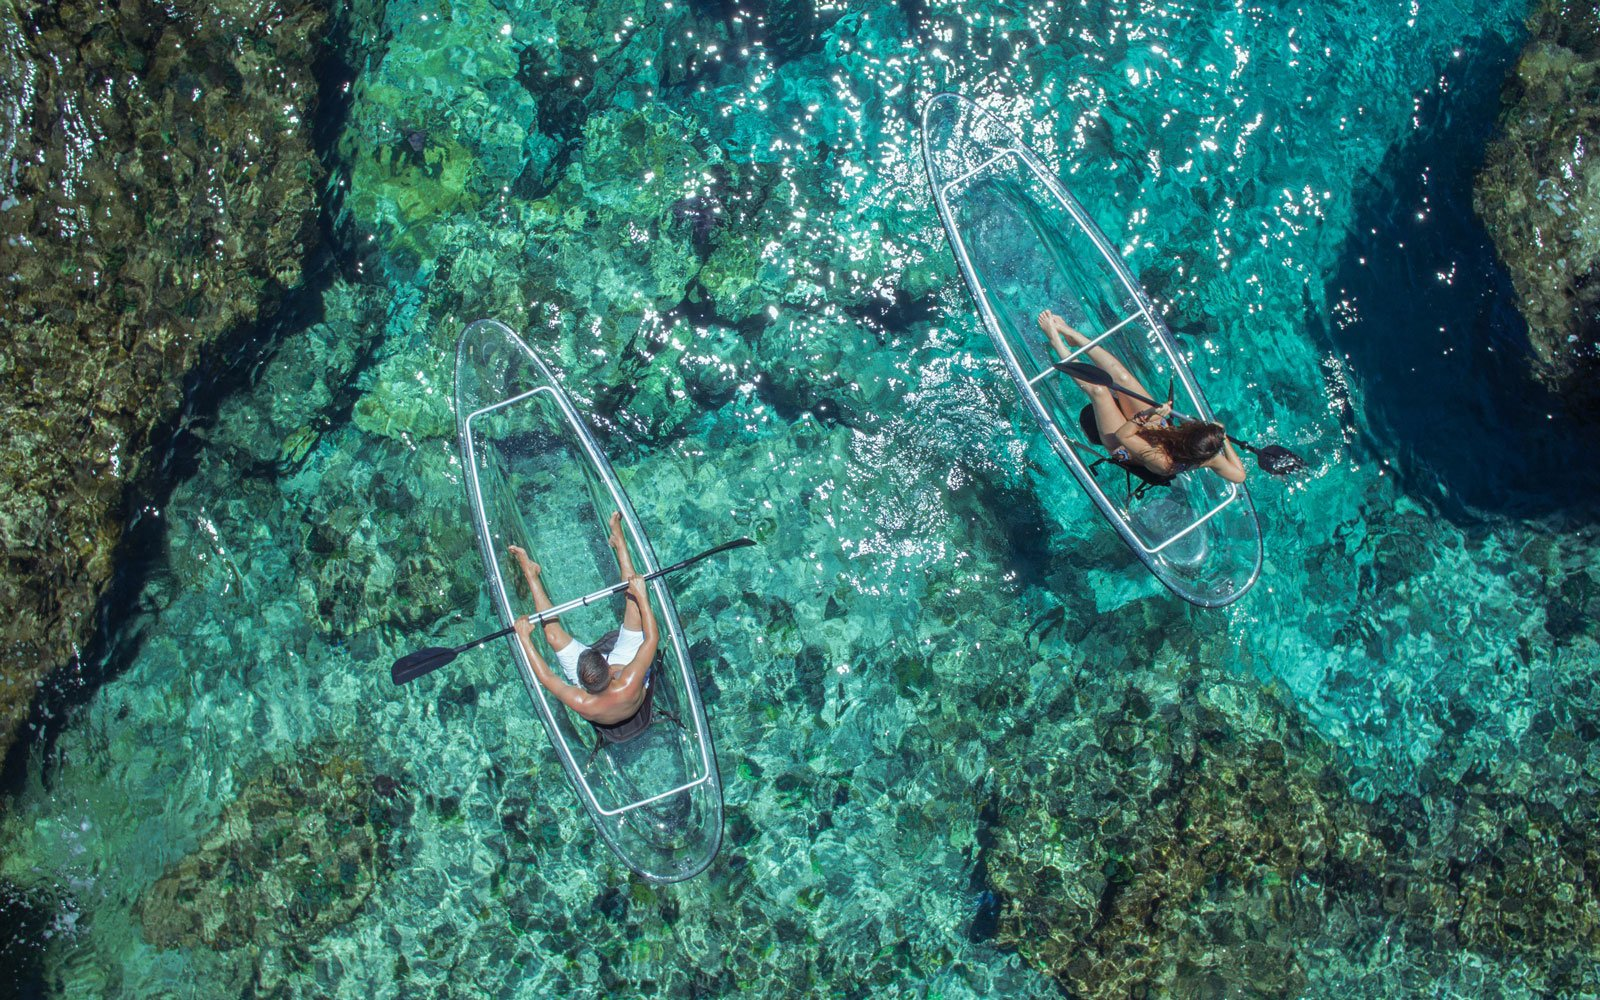 Kayaking Will Be Even More Fun With These Transparent Kayaks